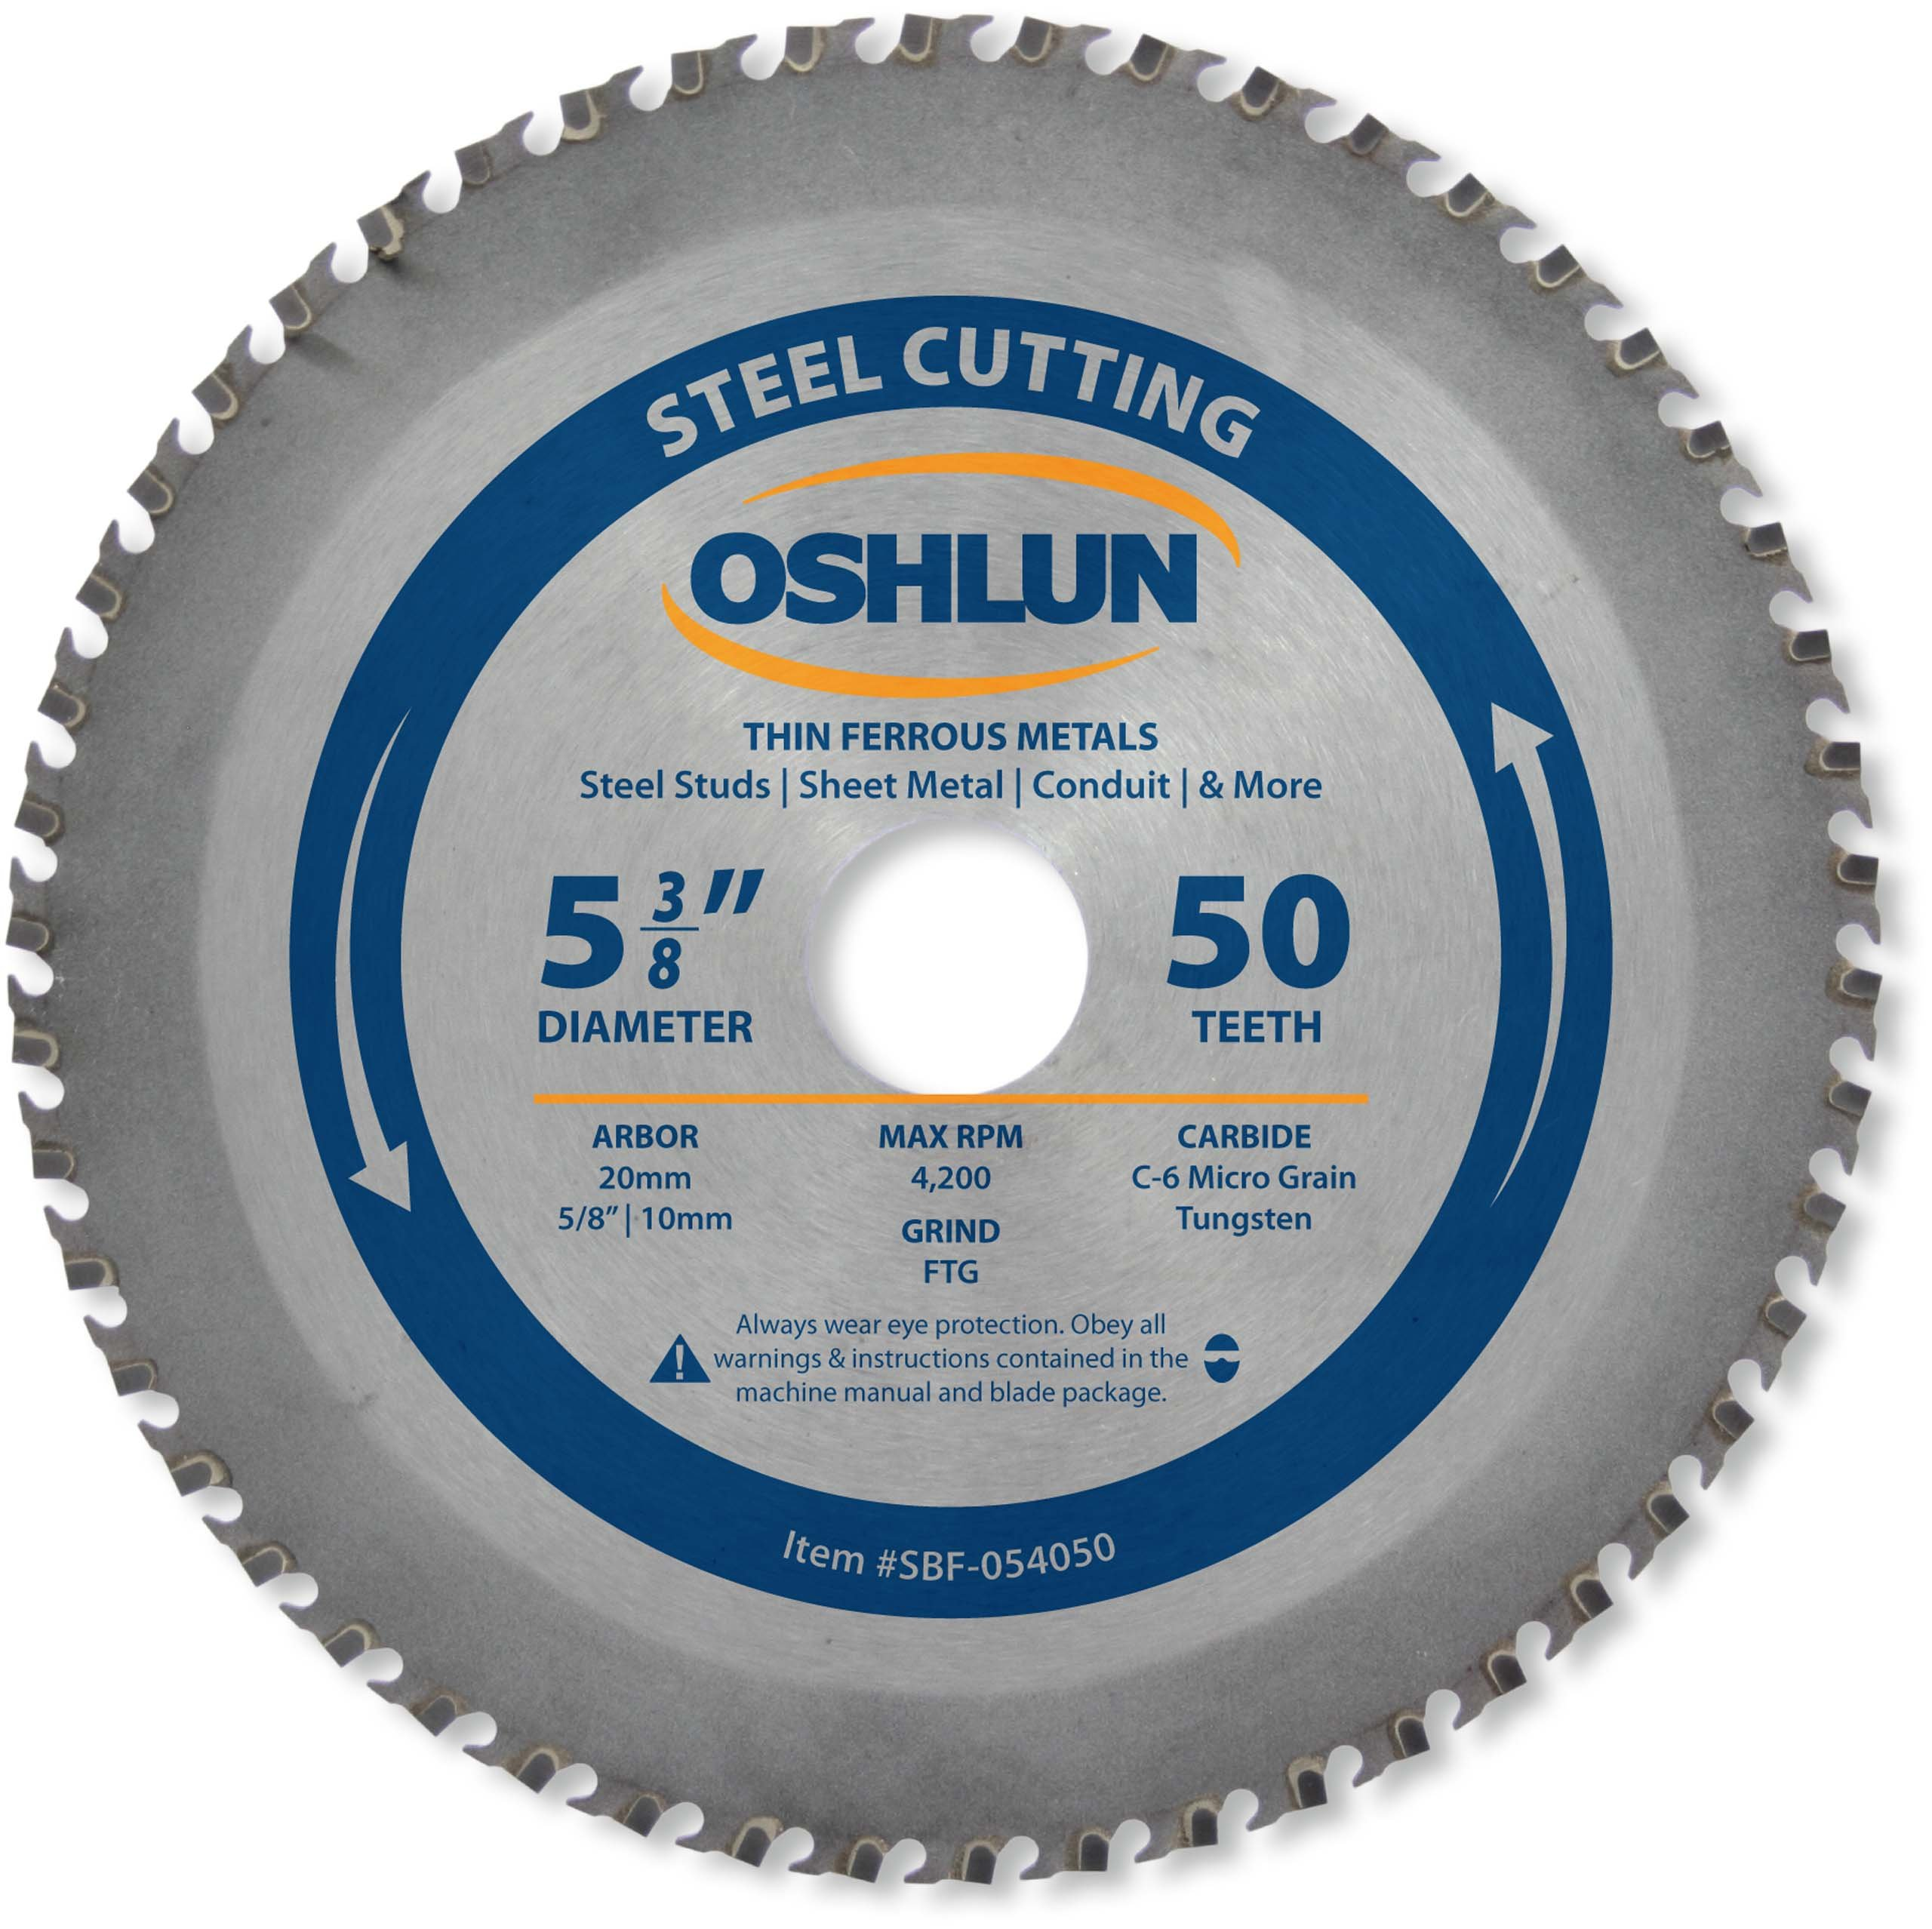 Oshlun SBF-054050 5-3/8-Inch 50 Tooth FTG Saw Blade with 20mm Arbor (5/8-Inch and 10mm Bushings) for Thin Mild Steel and Ferrous Metals